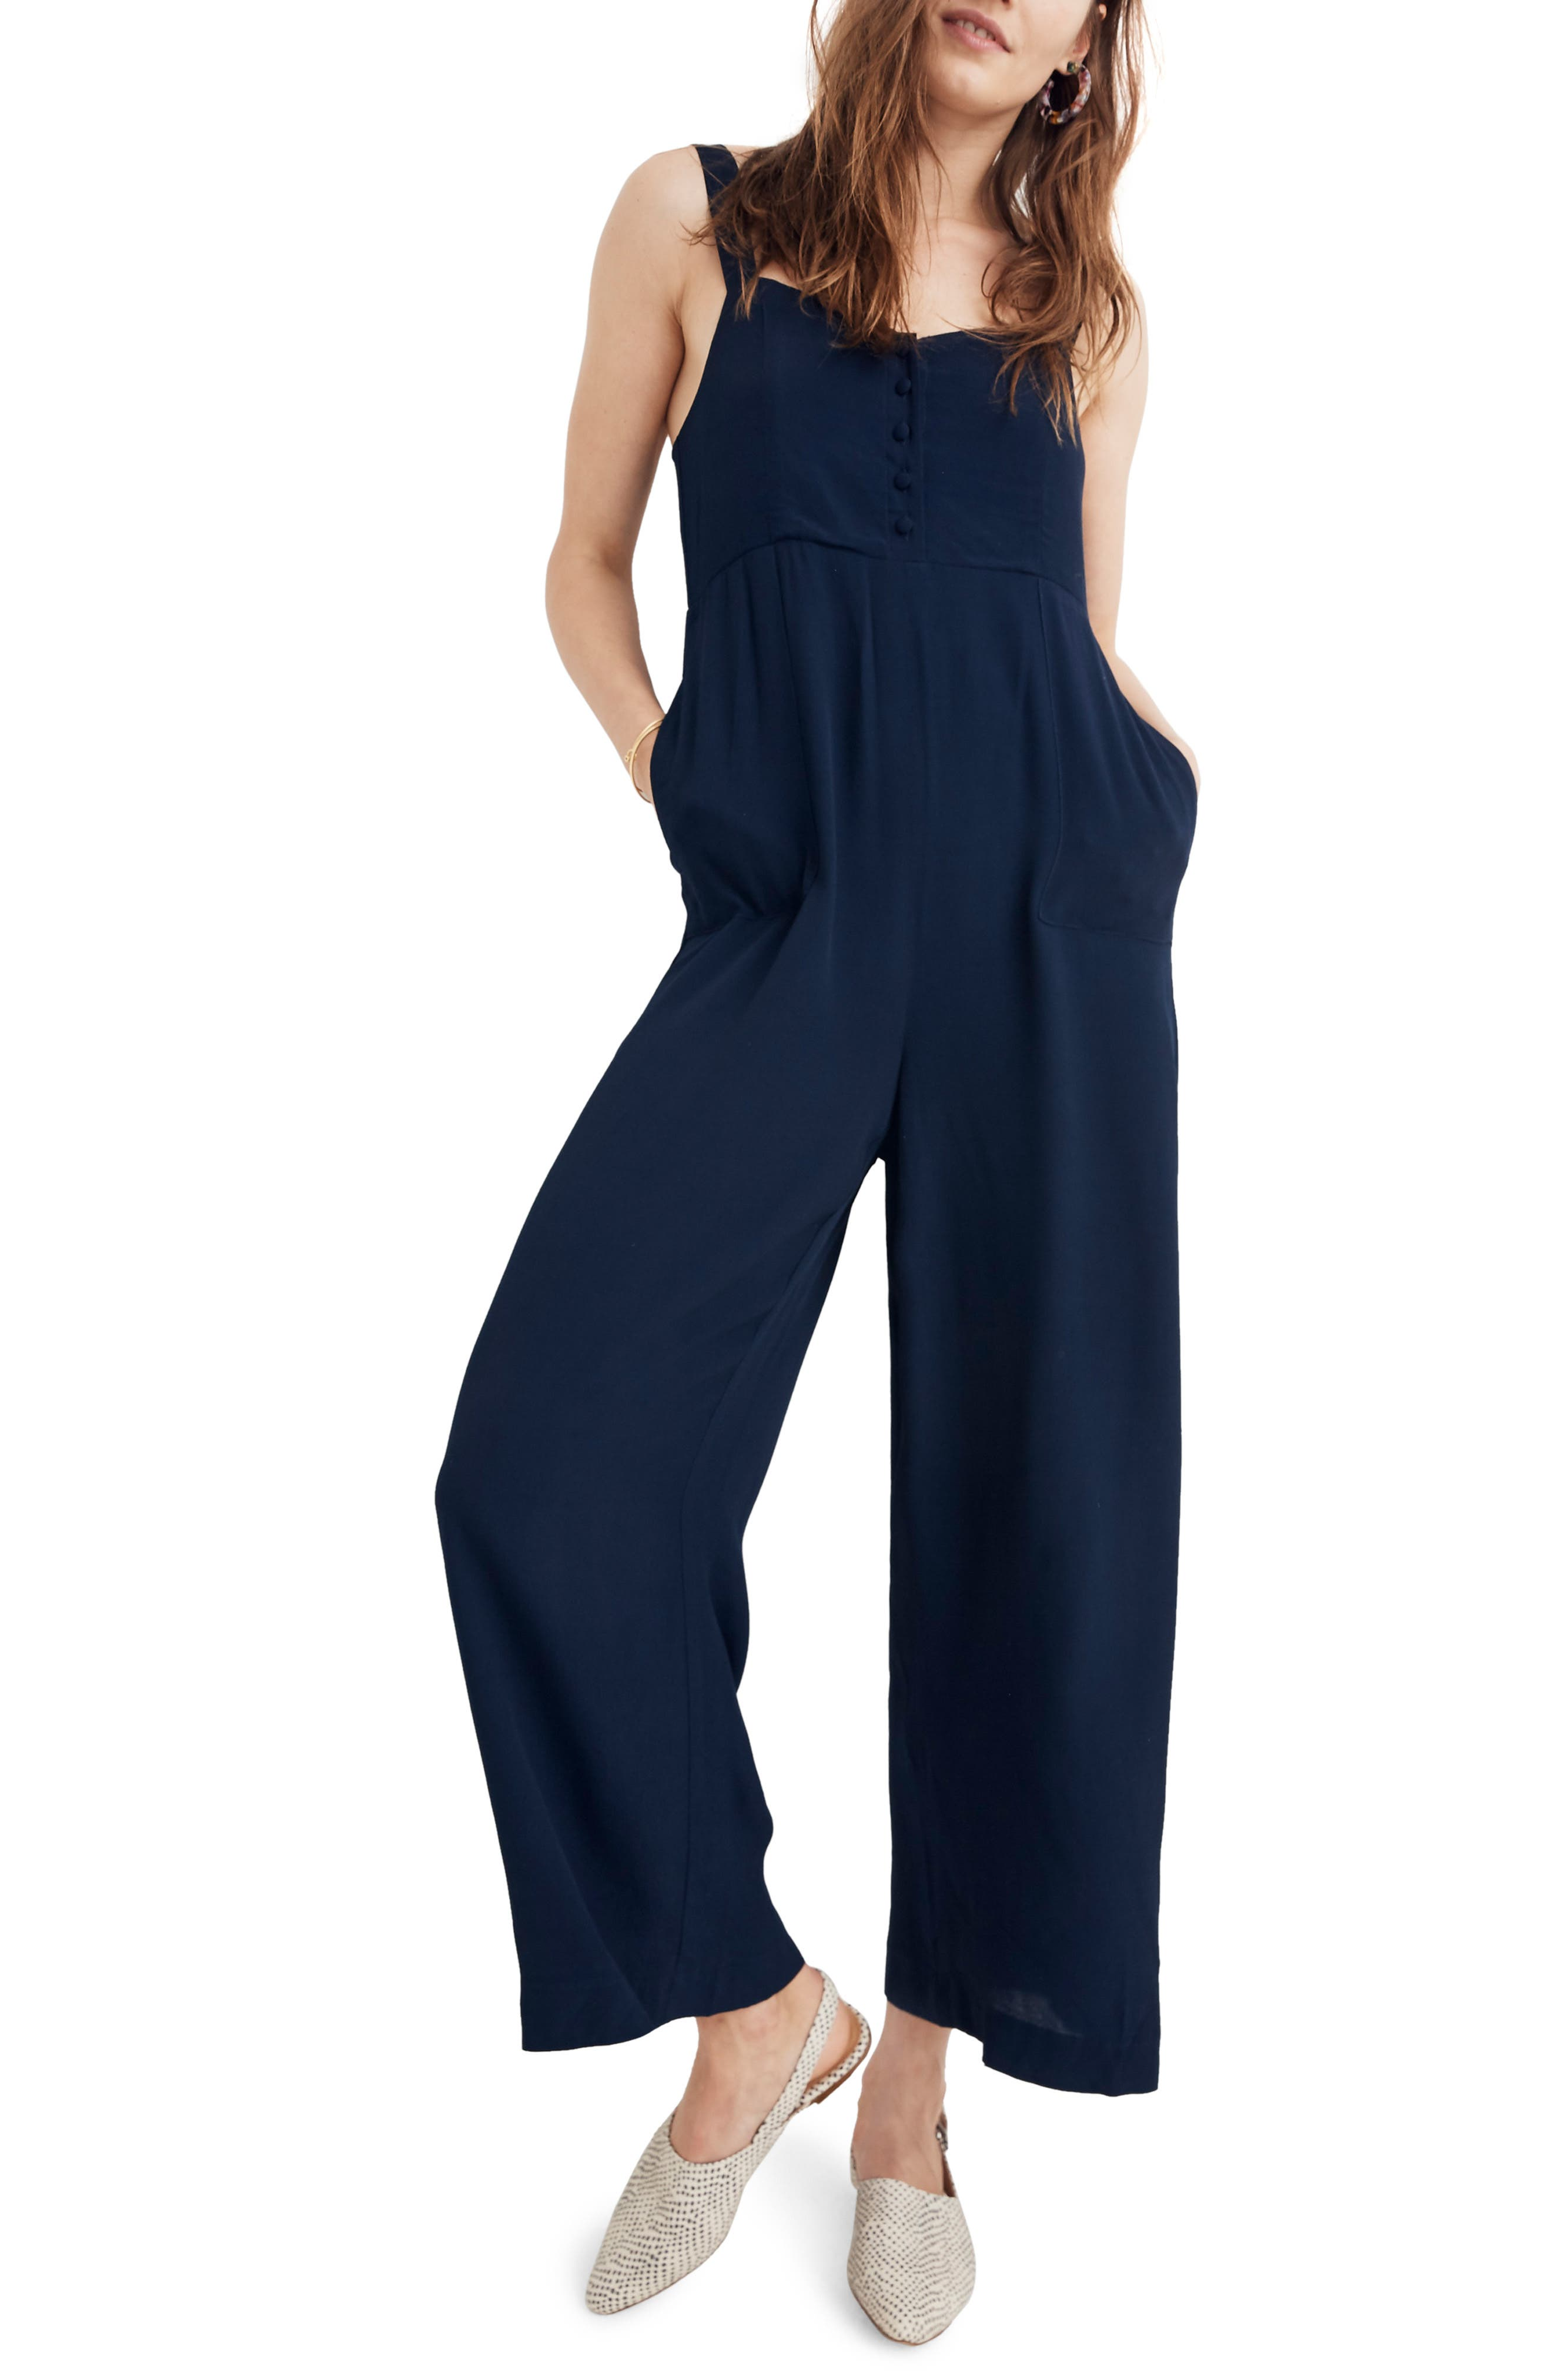 MADEWELL,                             Button Front Wide Leg Jumpsuit,                             Main thumbnail 1, color,                             400